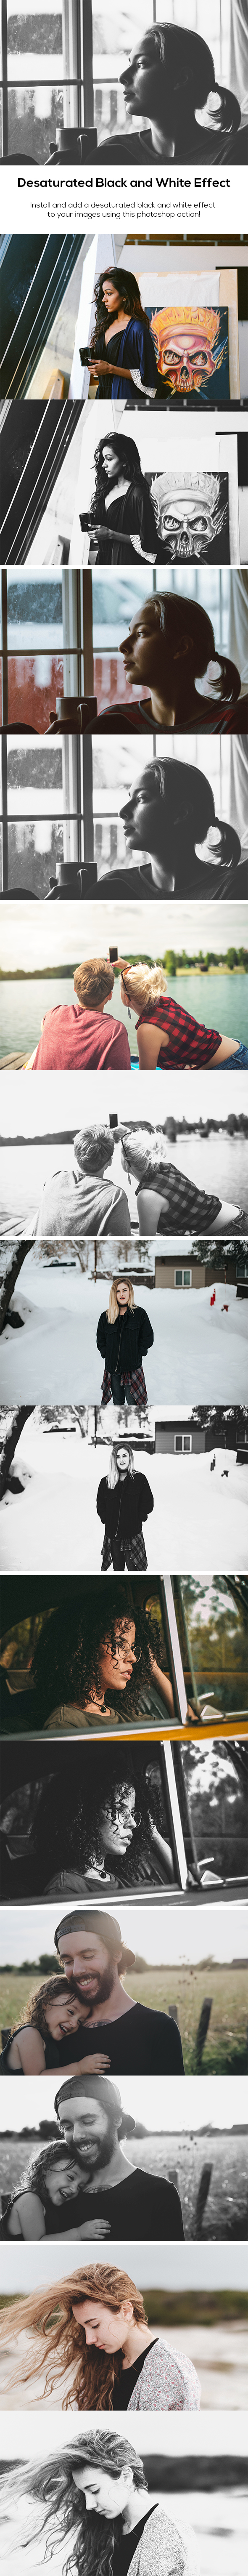 Desaturated Black and White Effect - Photo Effects Actions